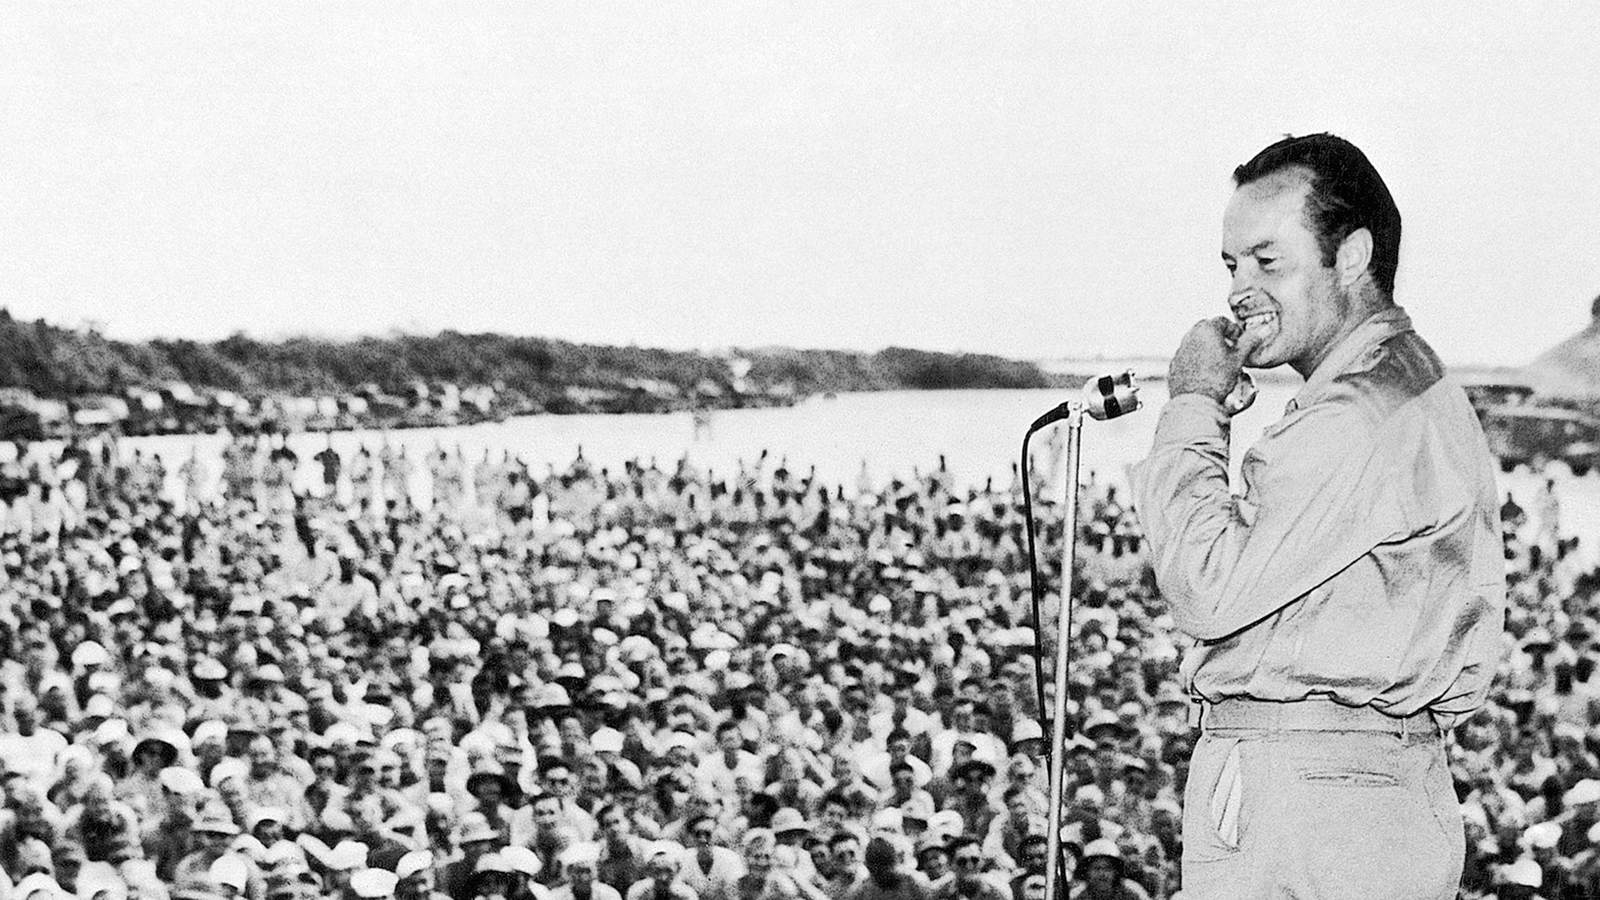 uso shows in prose during world war ii